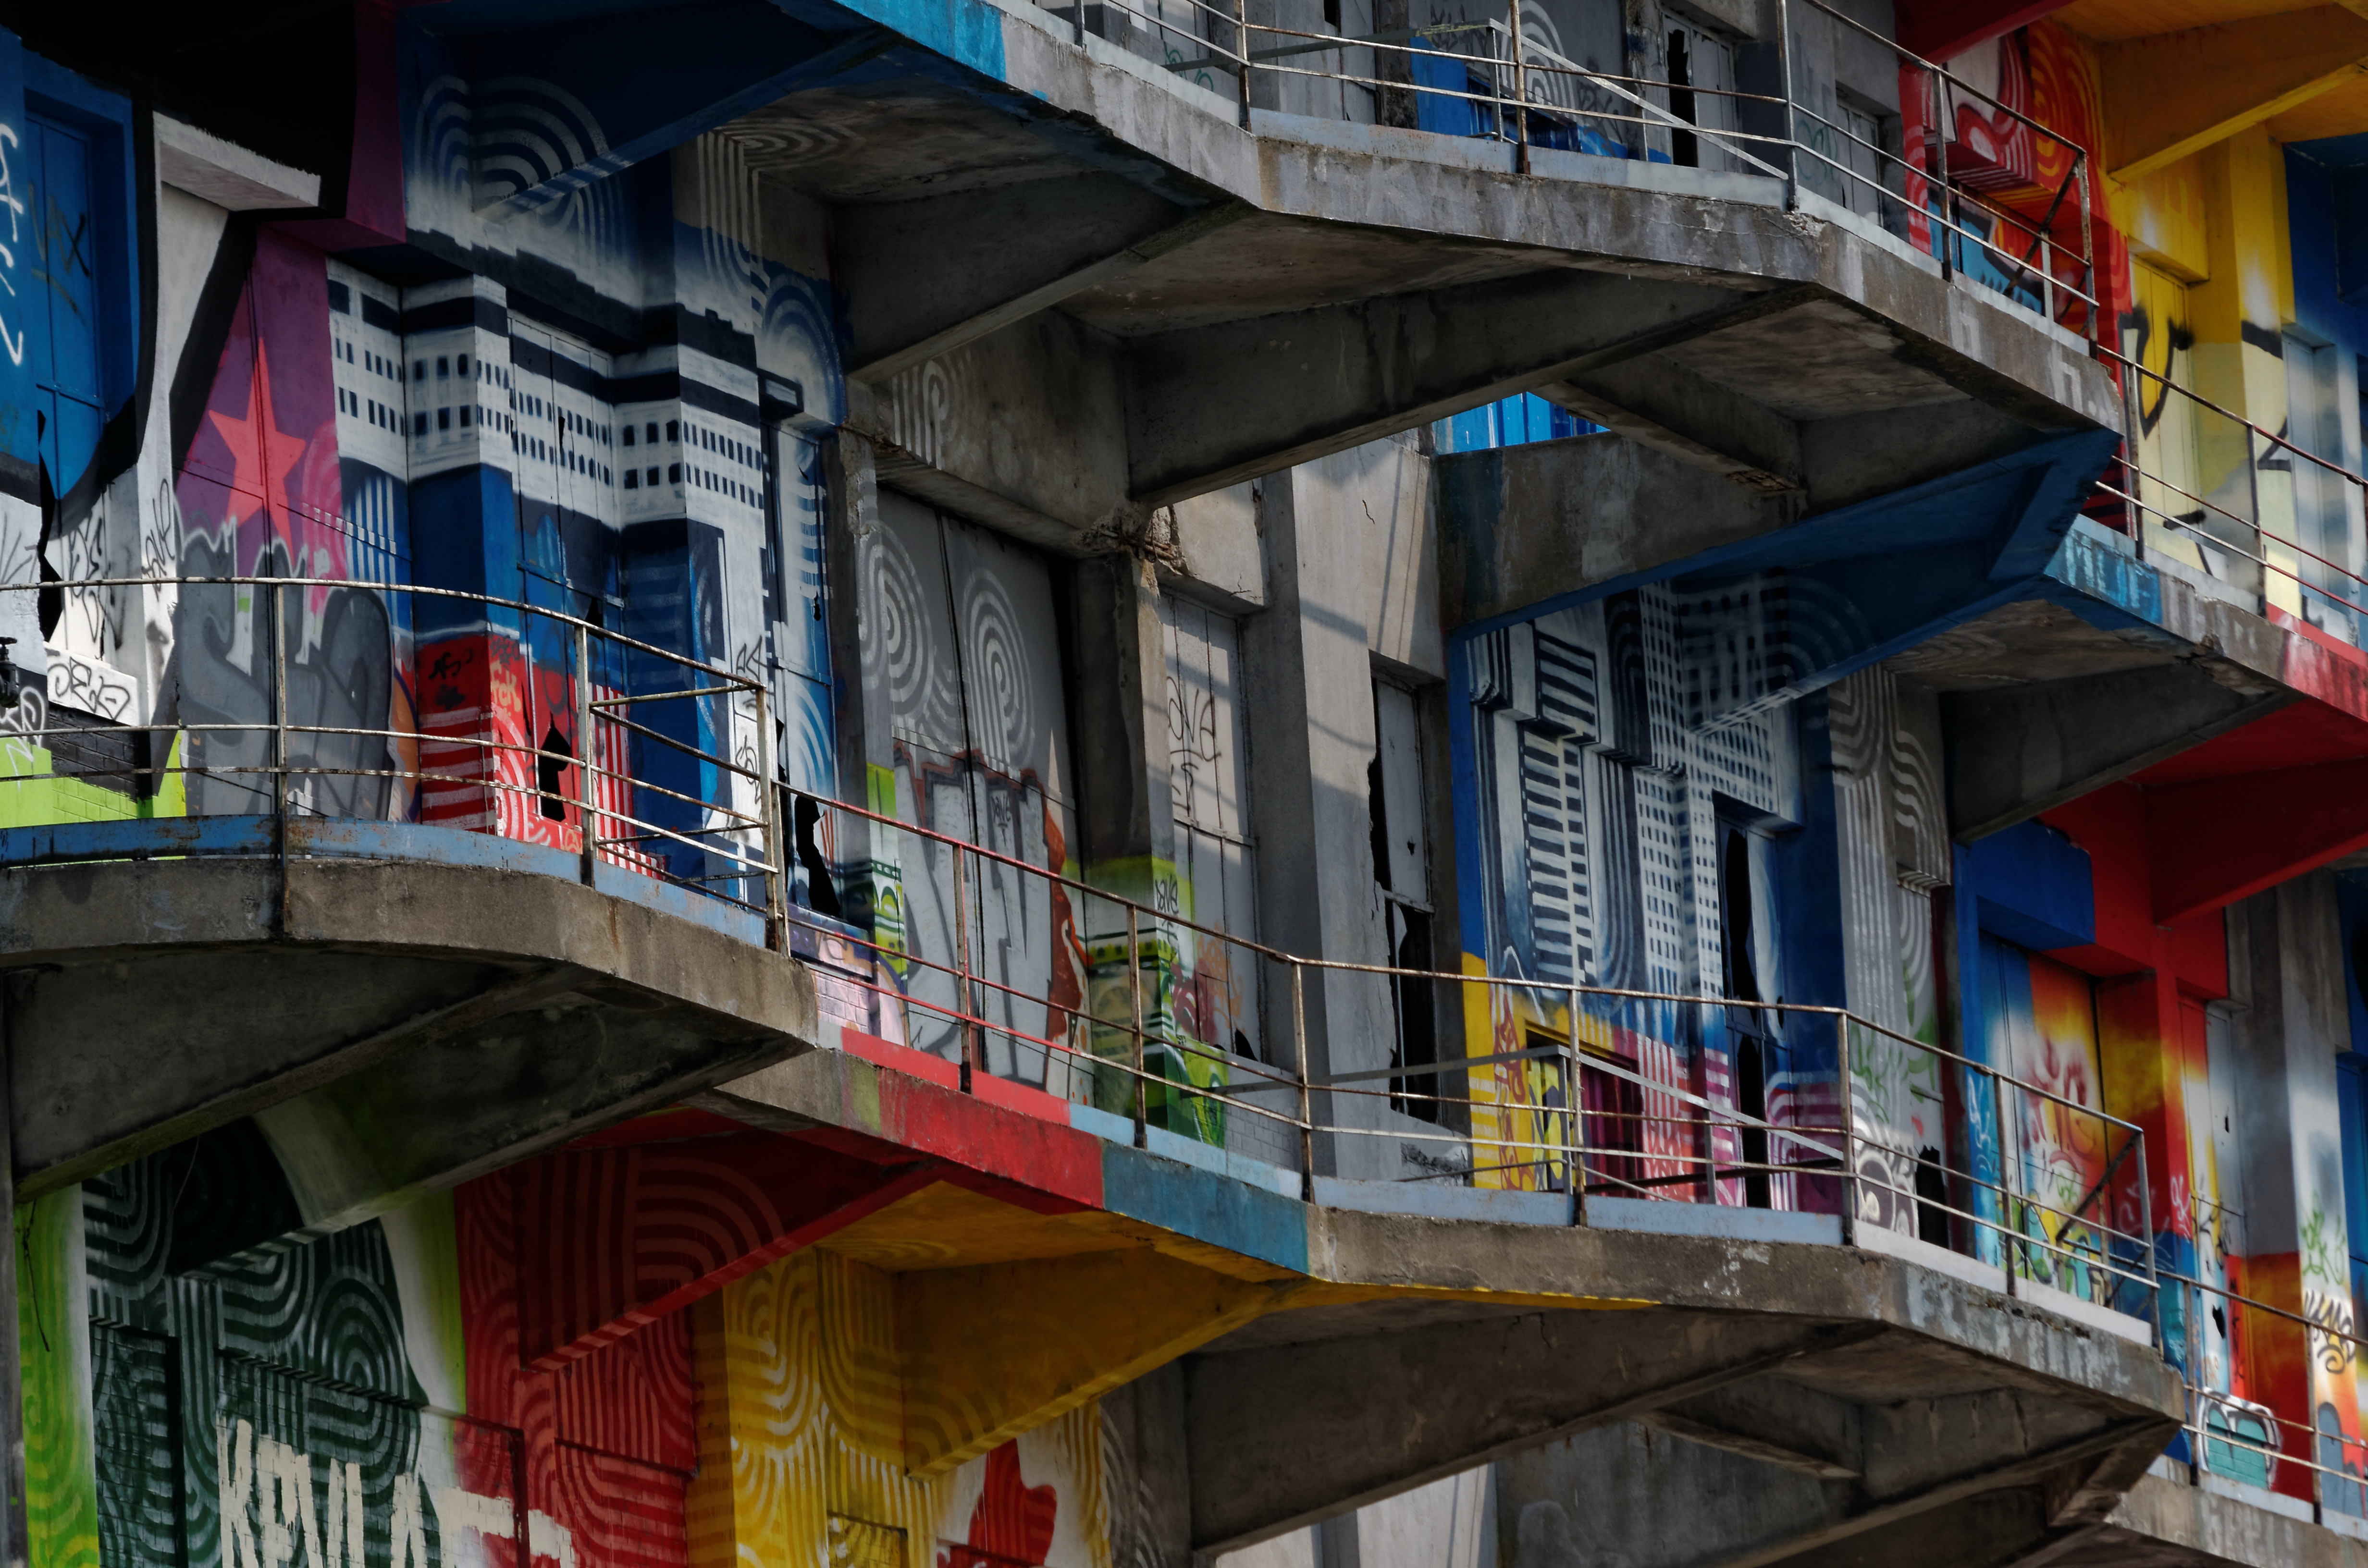 Urban residential apartment buildings in Pantin with colorful street graffiti street art on walls